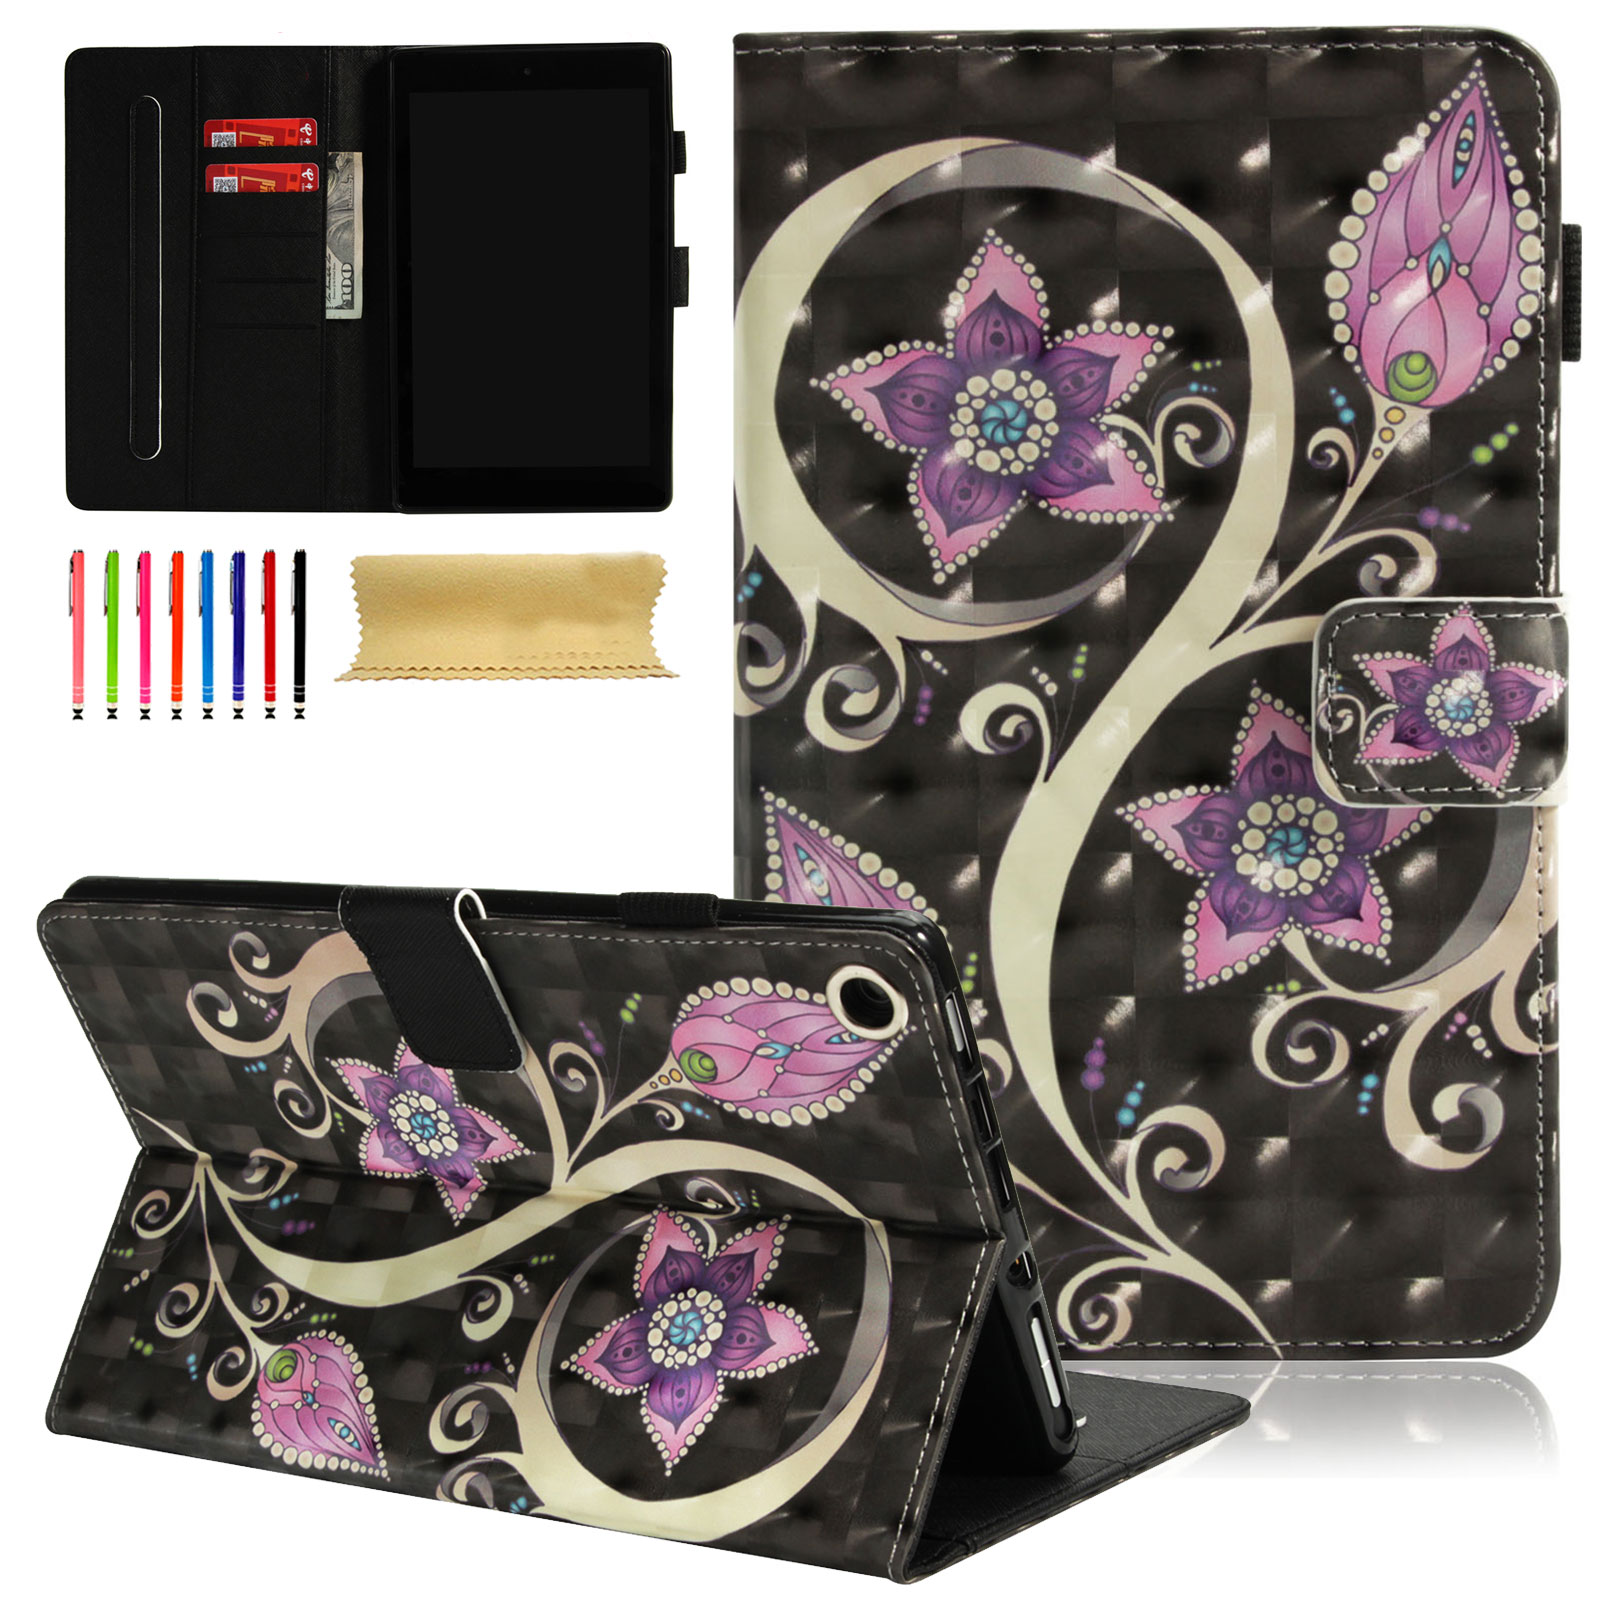 Fire HD 8 2017/ 2016/ 2015 Case, Goodest 3D Diamond Colourful Pattern Wallet Folio Stand Case with Auto Sleep/Wake for All-New Amazon Kindle Fire HD 8 Tablet (5th/6th/7th Generation),Peacock Flower